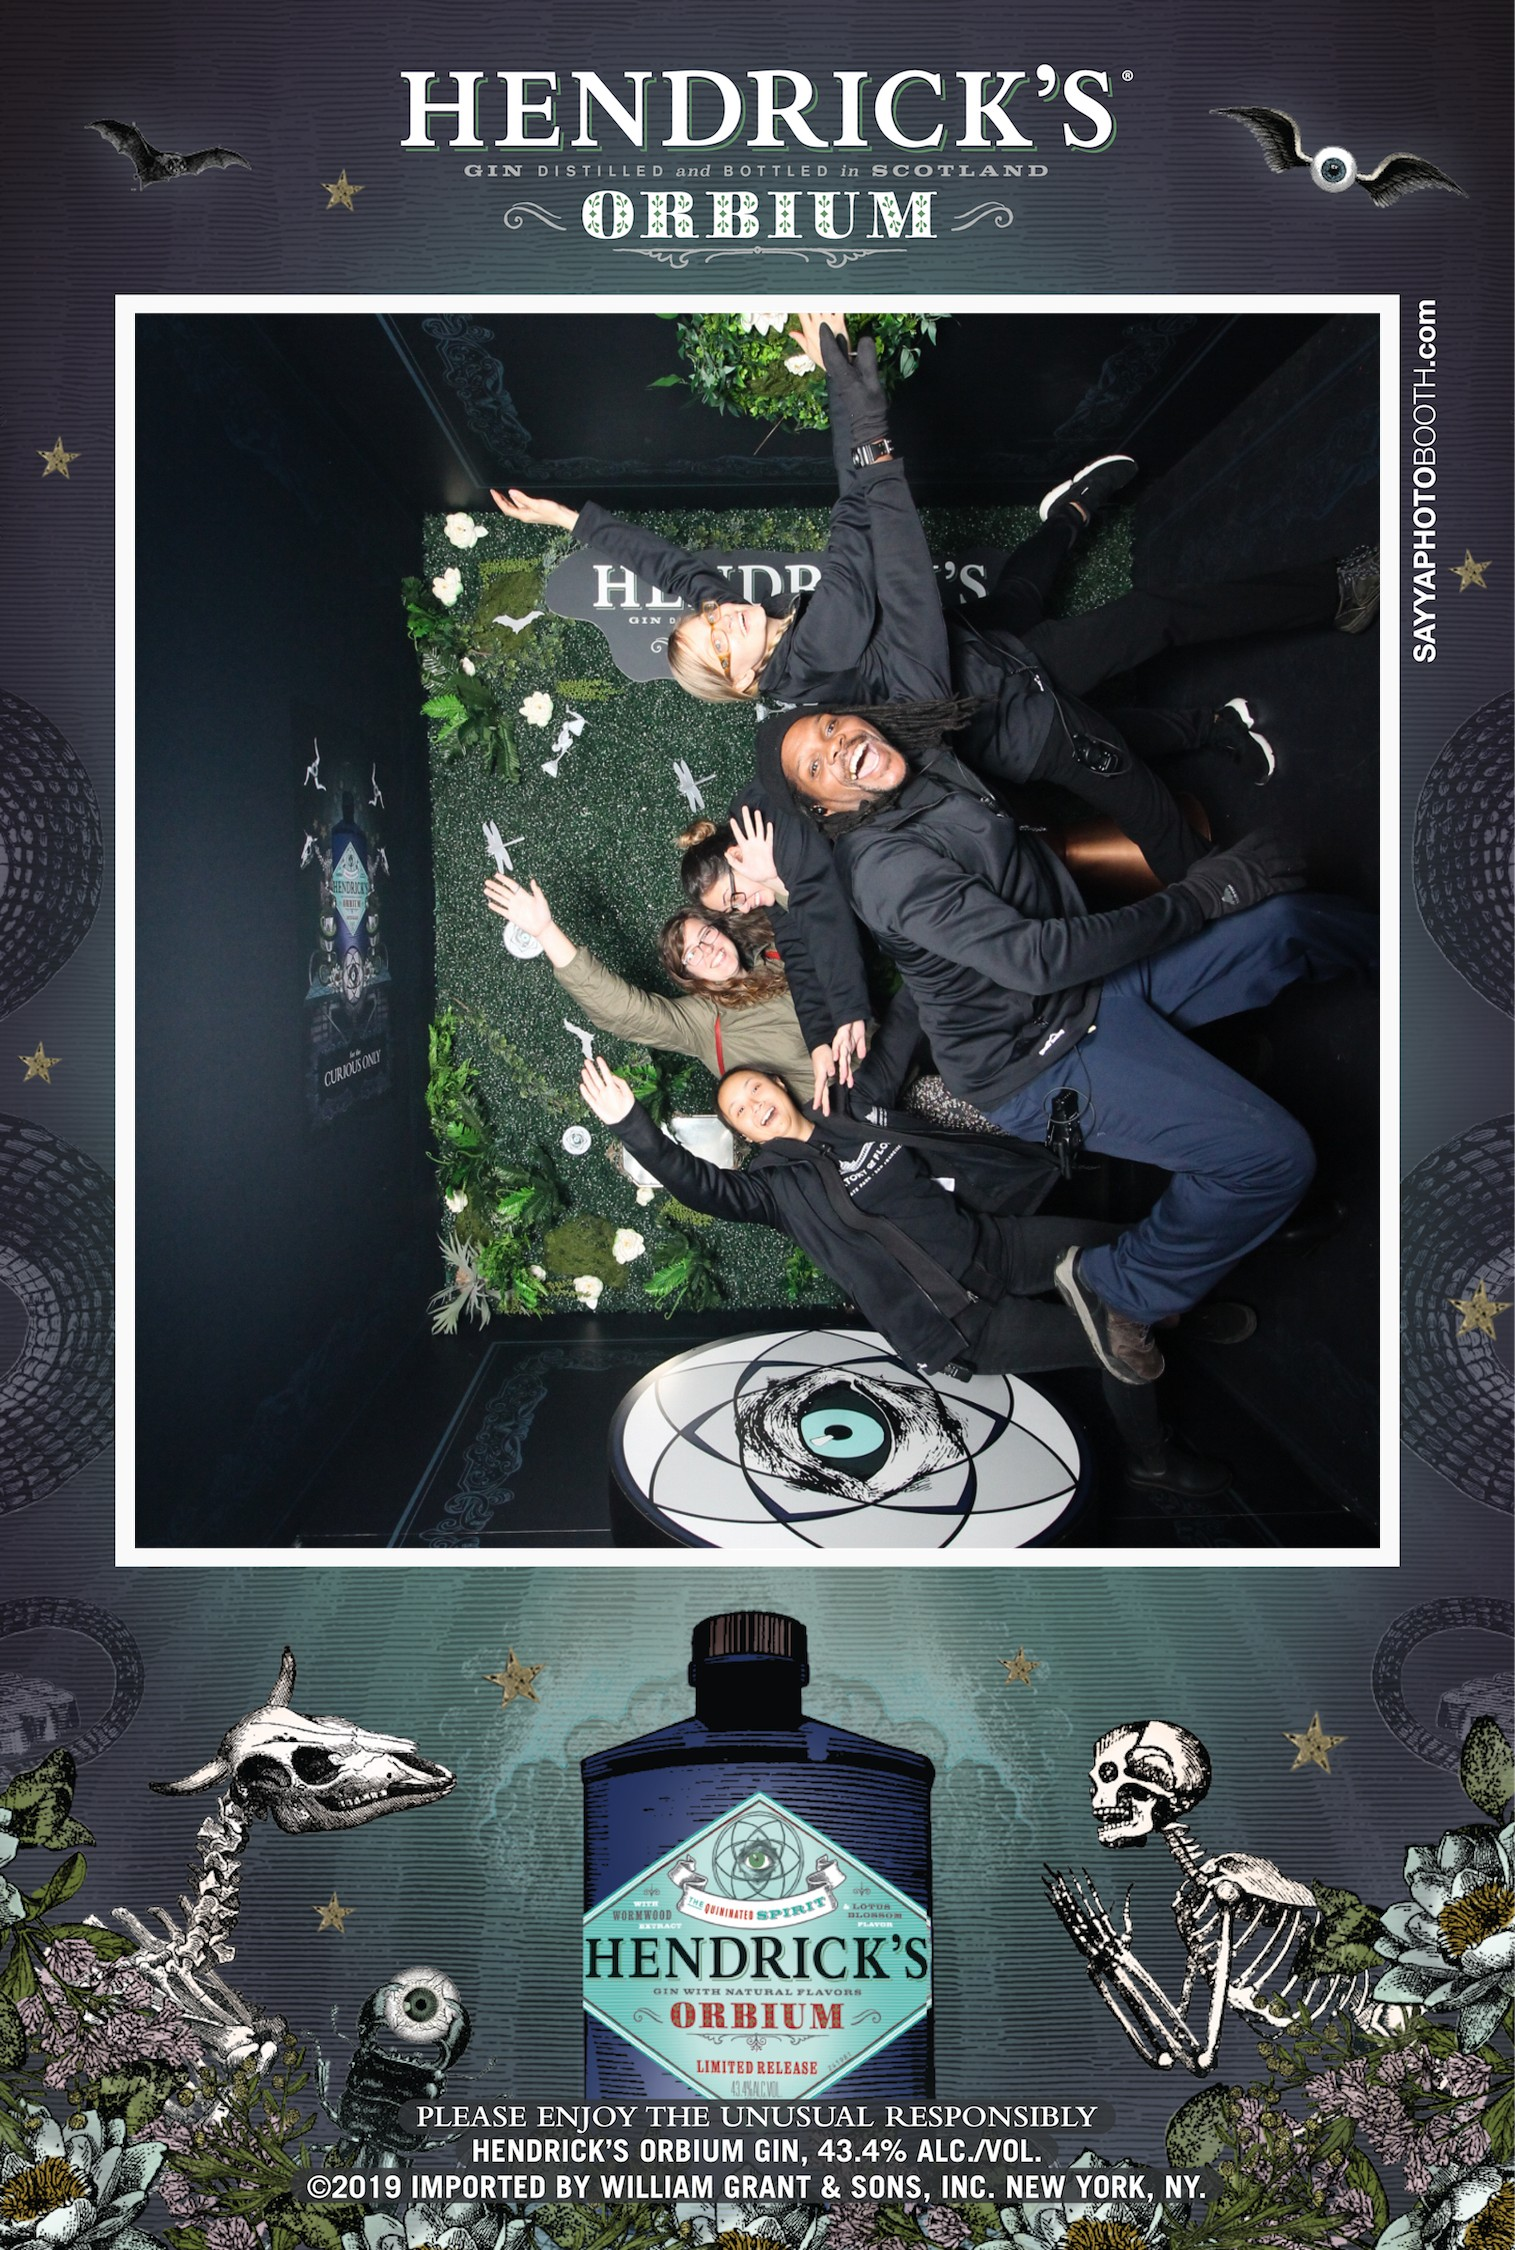 Hendrick's Orbium Launch Event